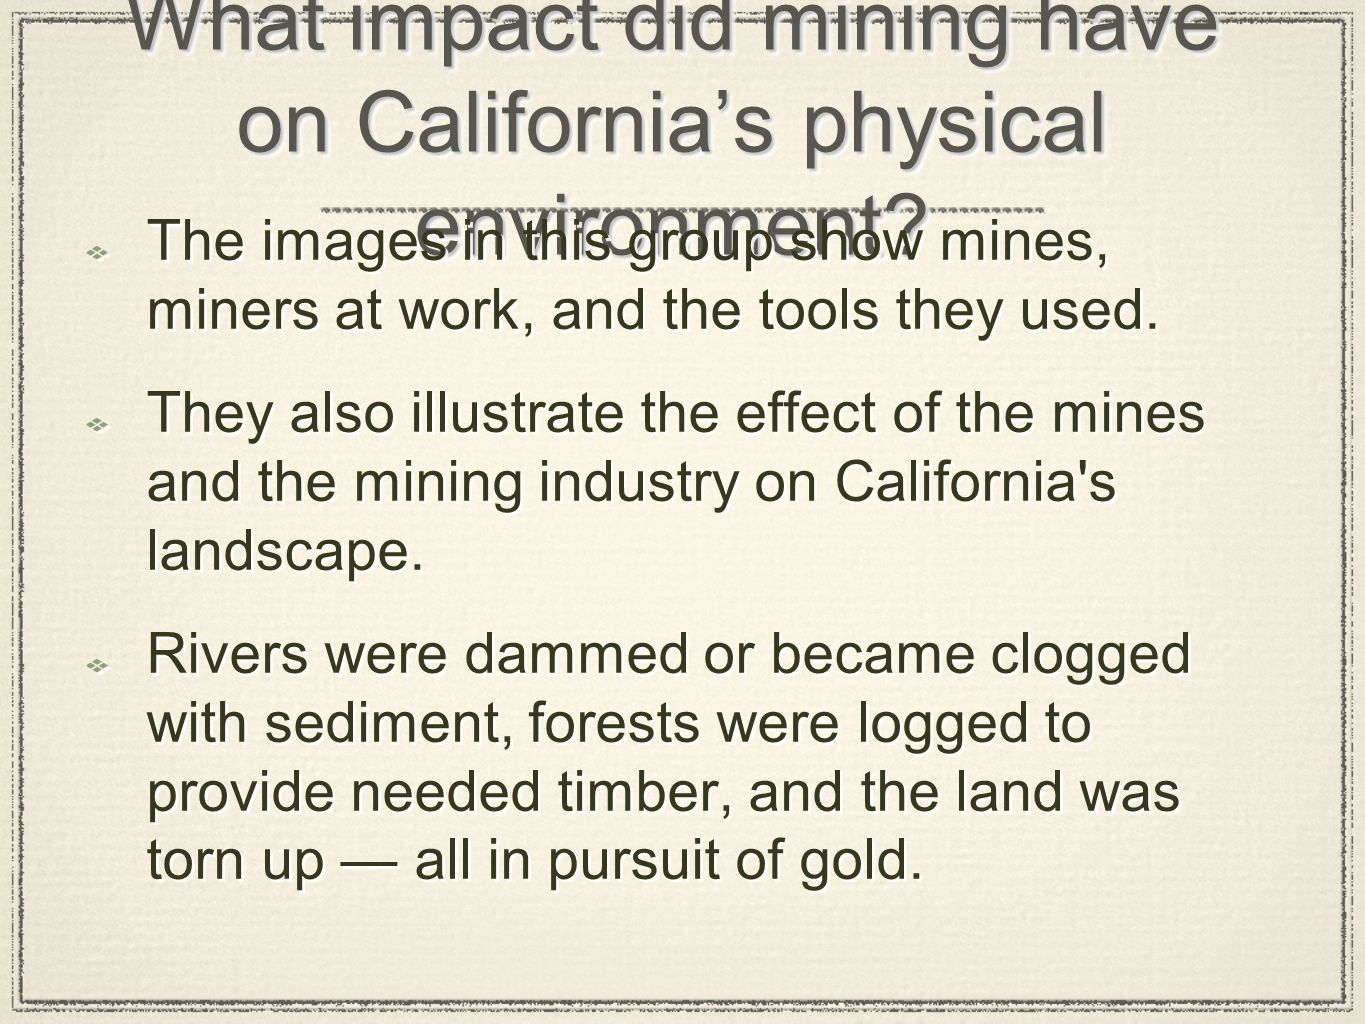 What impact did mining have on California's physical environment